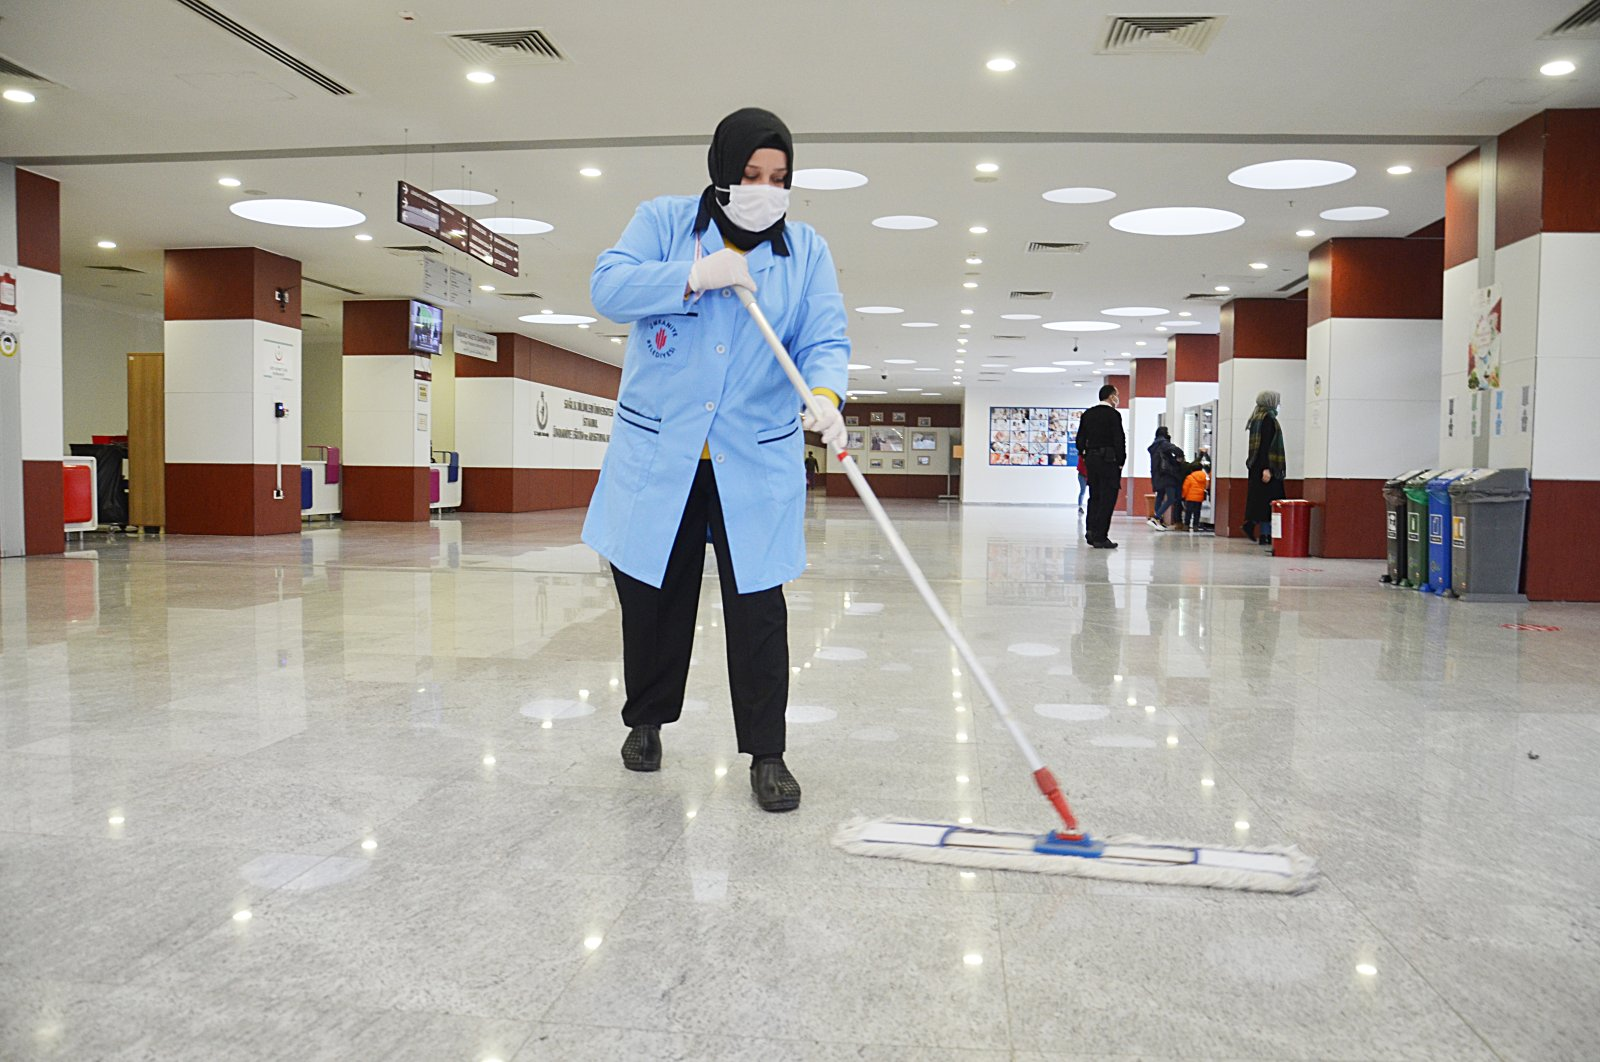 Nurten Gündoğdu cleans the floor at a hospital in Istanbul, Turkey, Dec. 20, 2020. (AA PHOTO)